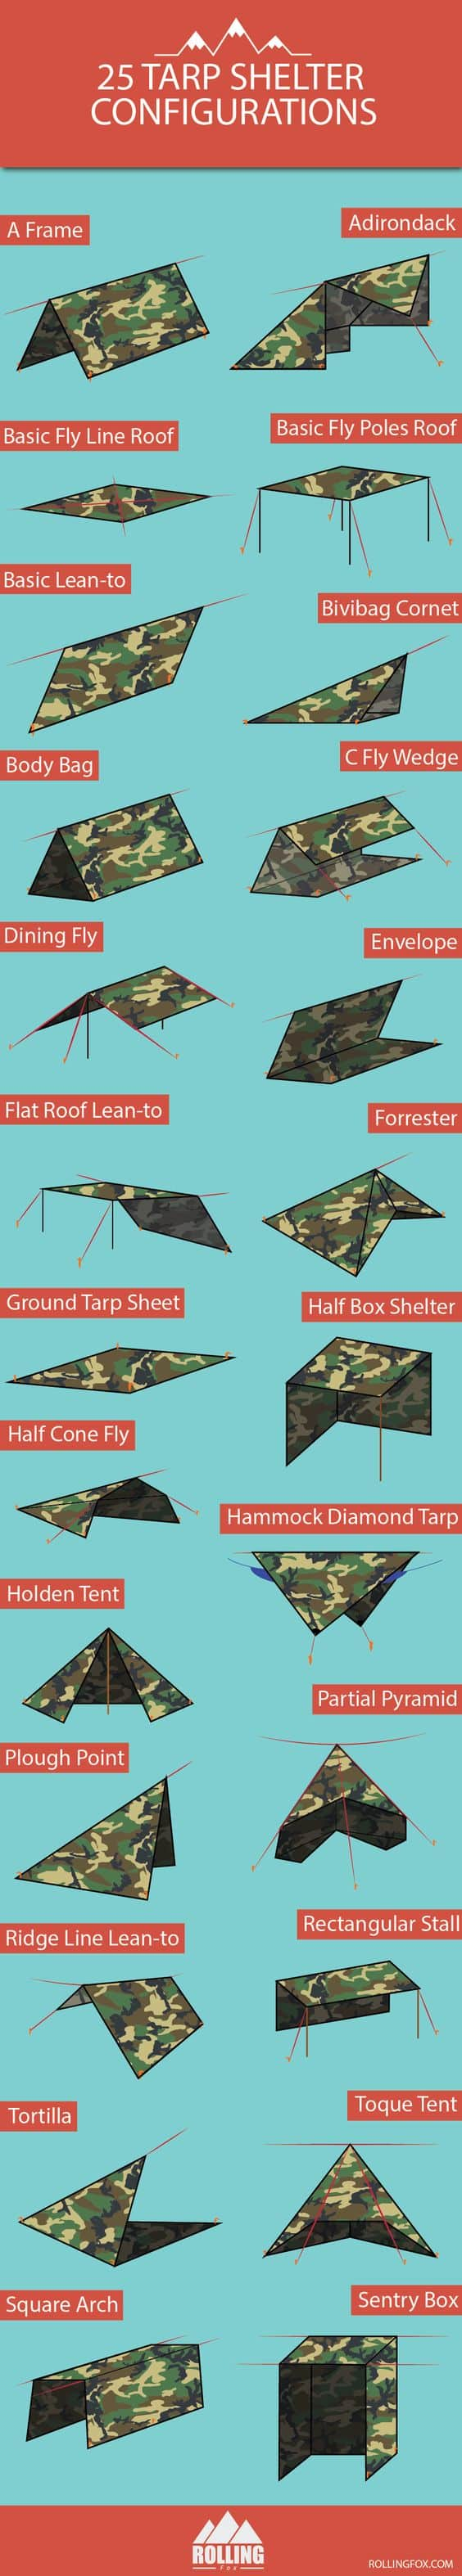 "Infographic | ""Quick Up"" Survival Shelters You Can Build With A Tarp"